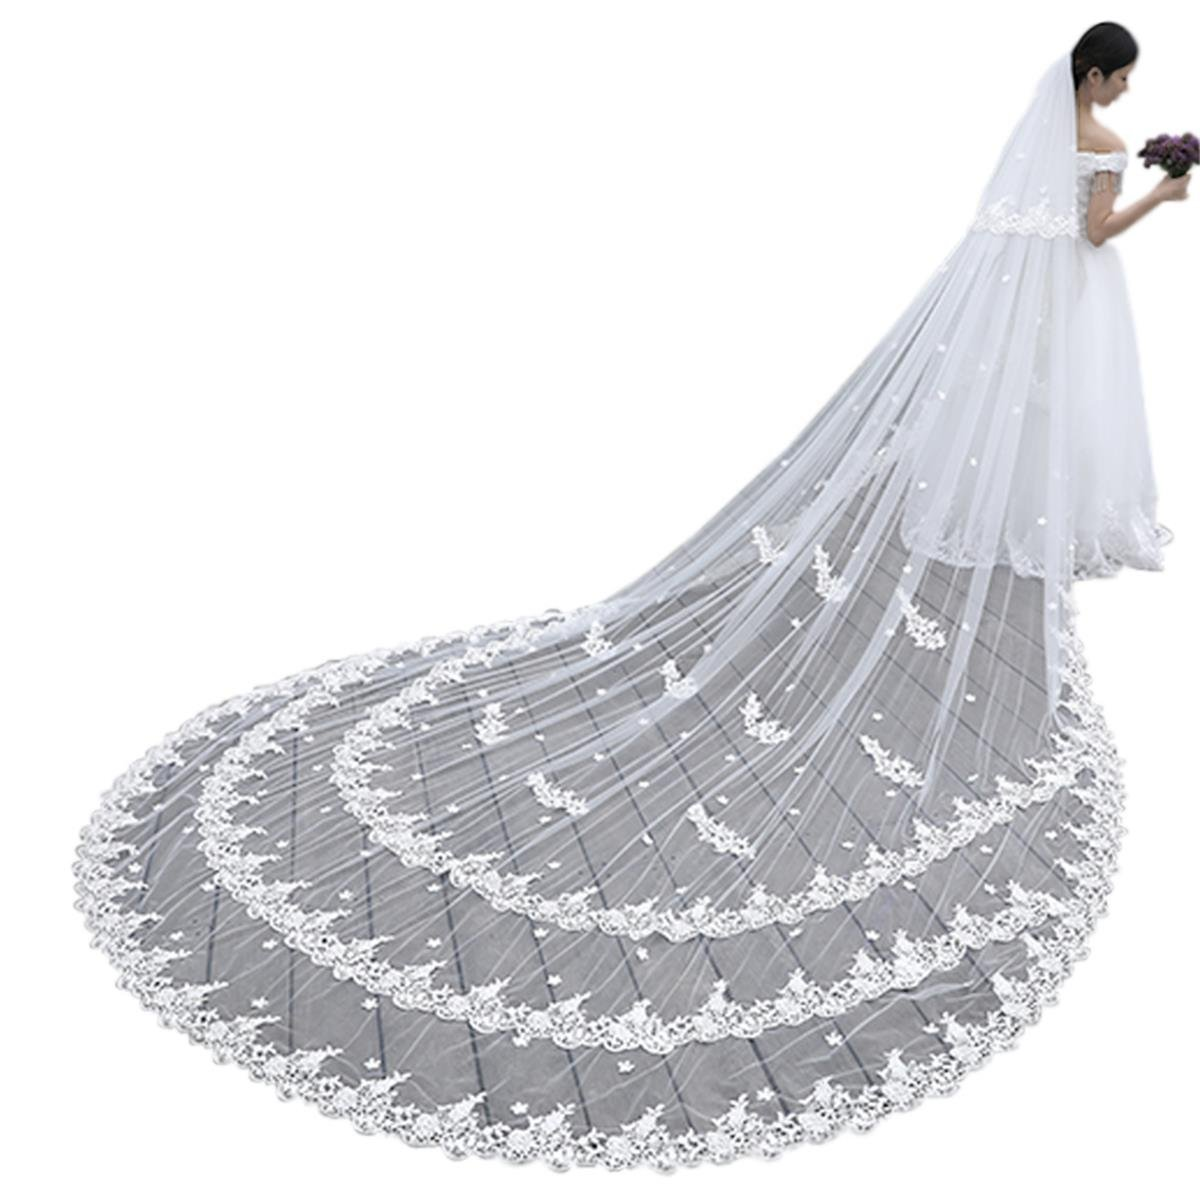 Wedding Bridal Veil 4M 2T Lace Applique Edge Long With Free Comb (Ivory)